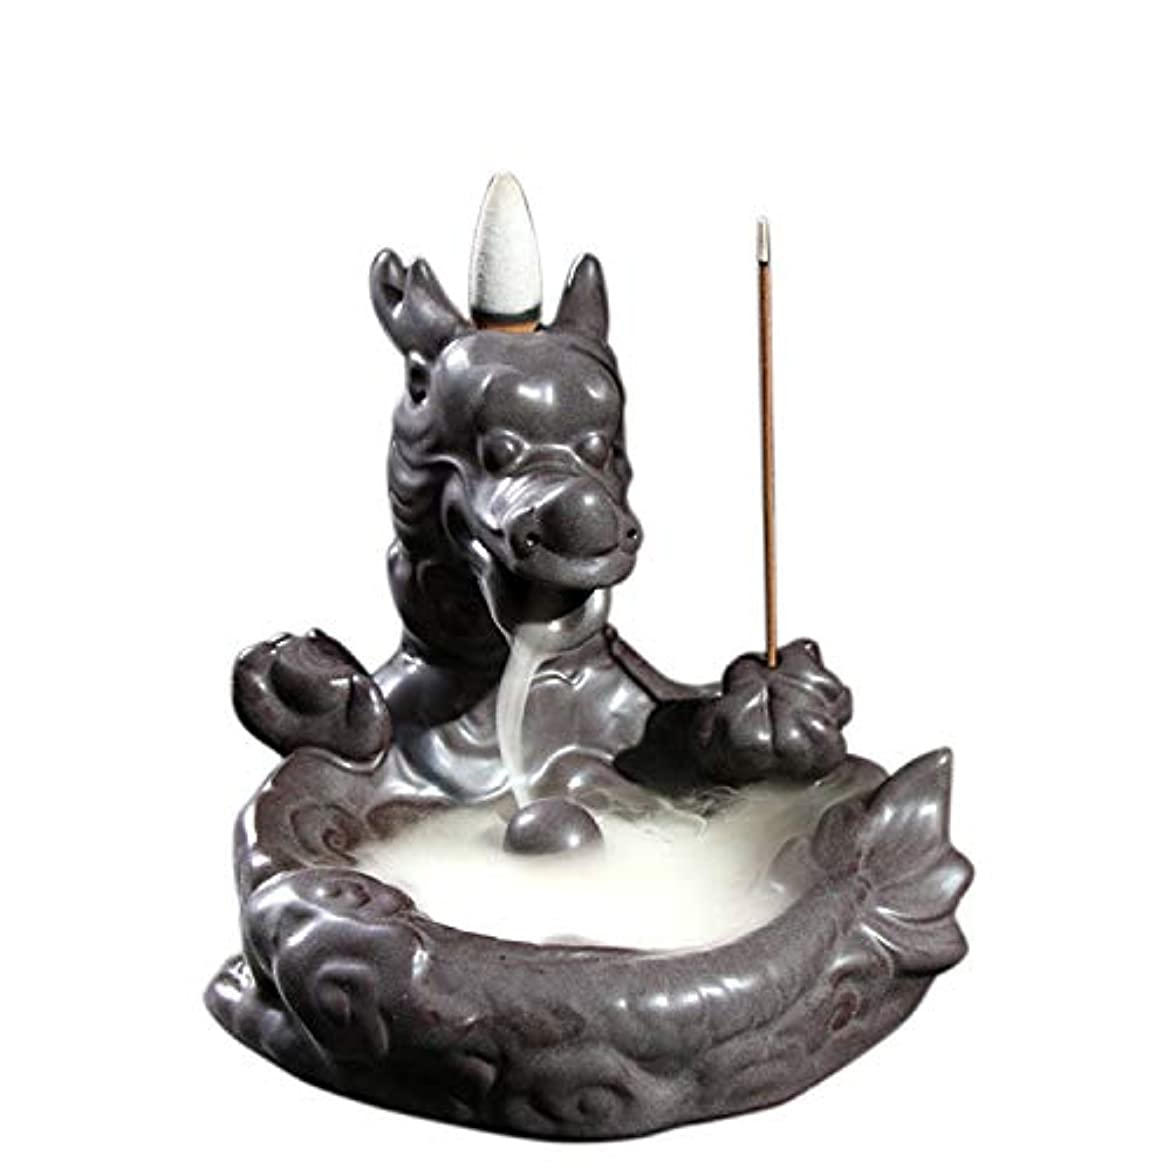 オーバーラン箱不機嫌XPPXPP Backflow Incense Burner, Household Ceramic Returning Cone-shaped Candlestick Burner